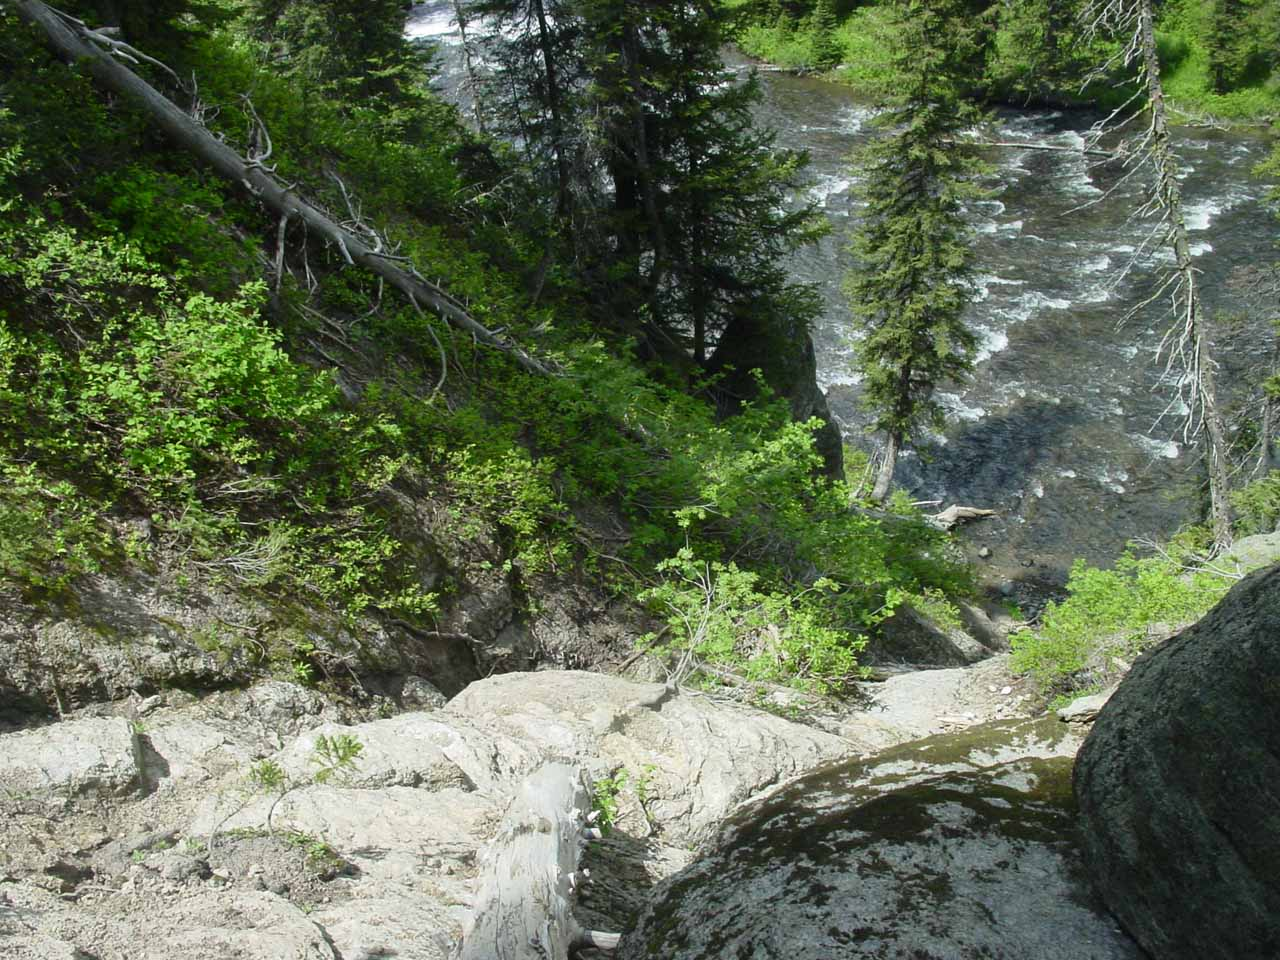 Looking down at the steep scramble to the base of the falls as seen back in June 2004